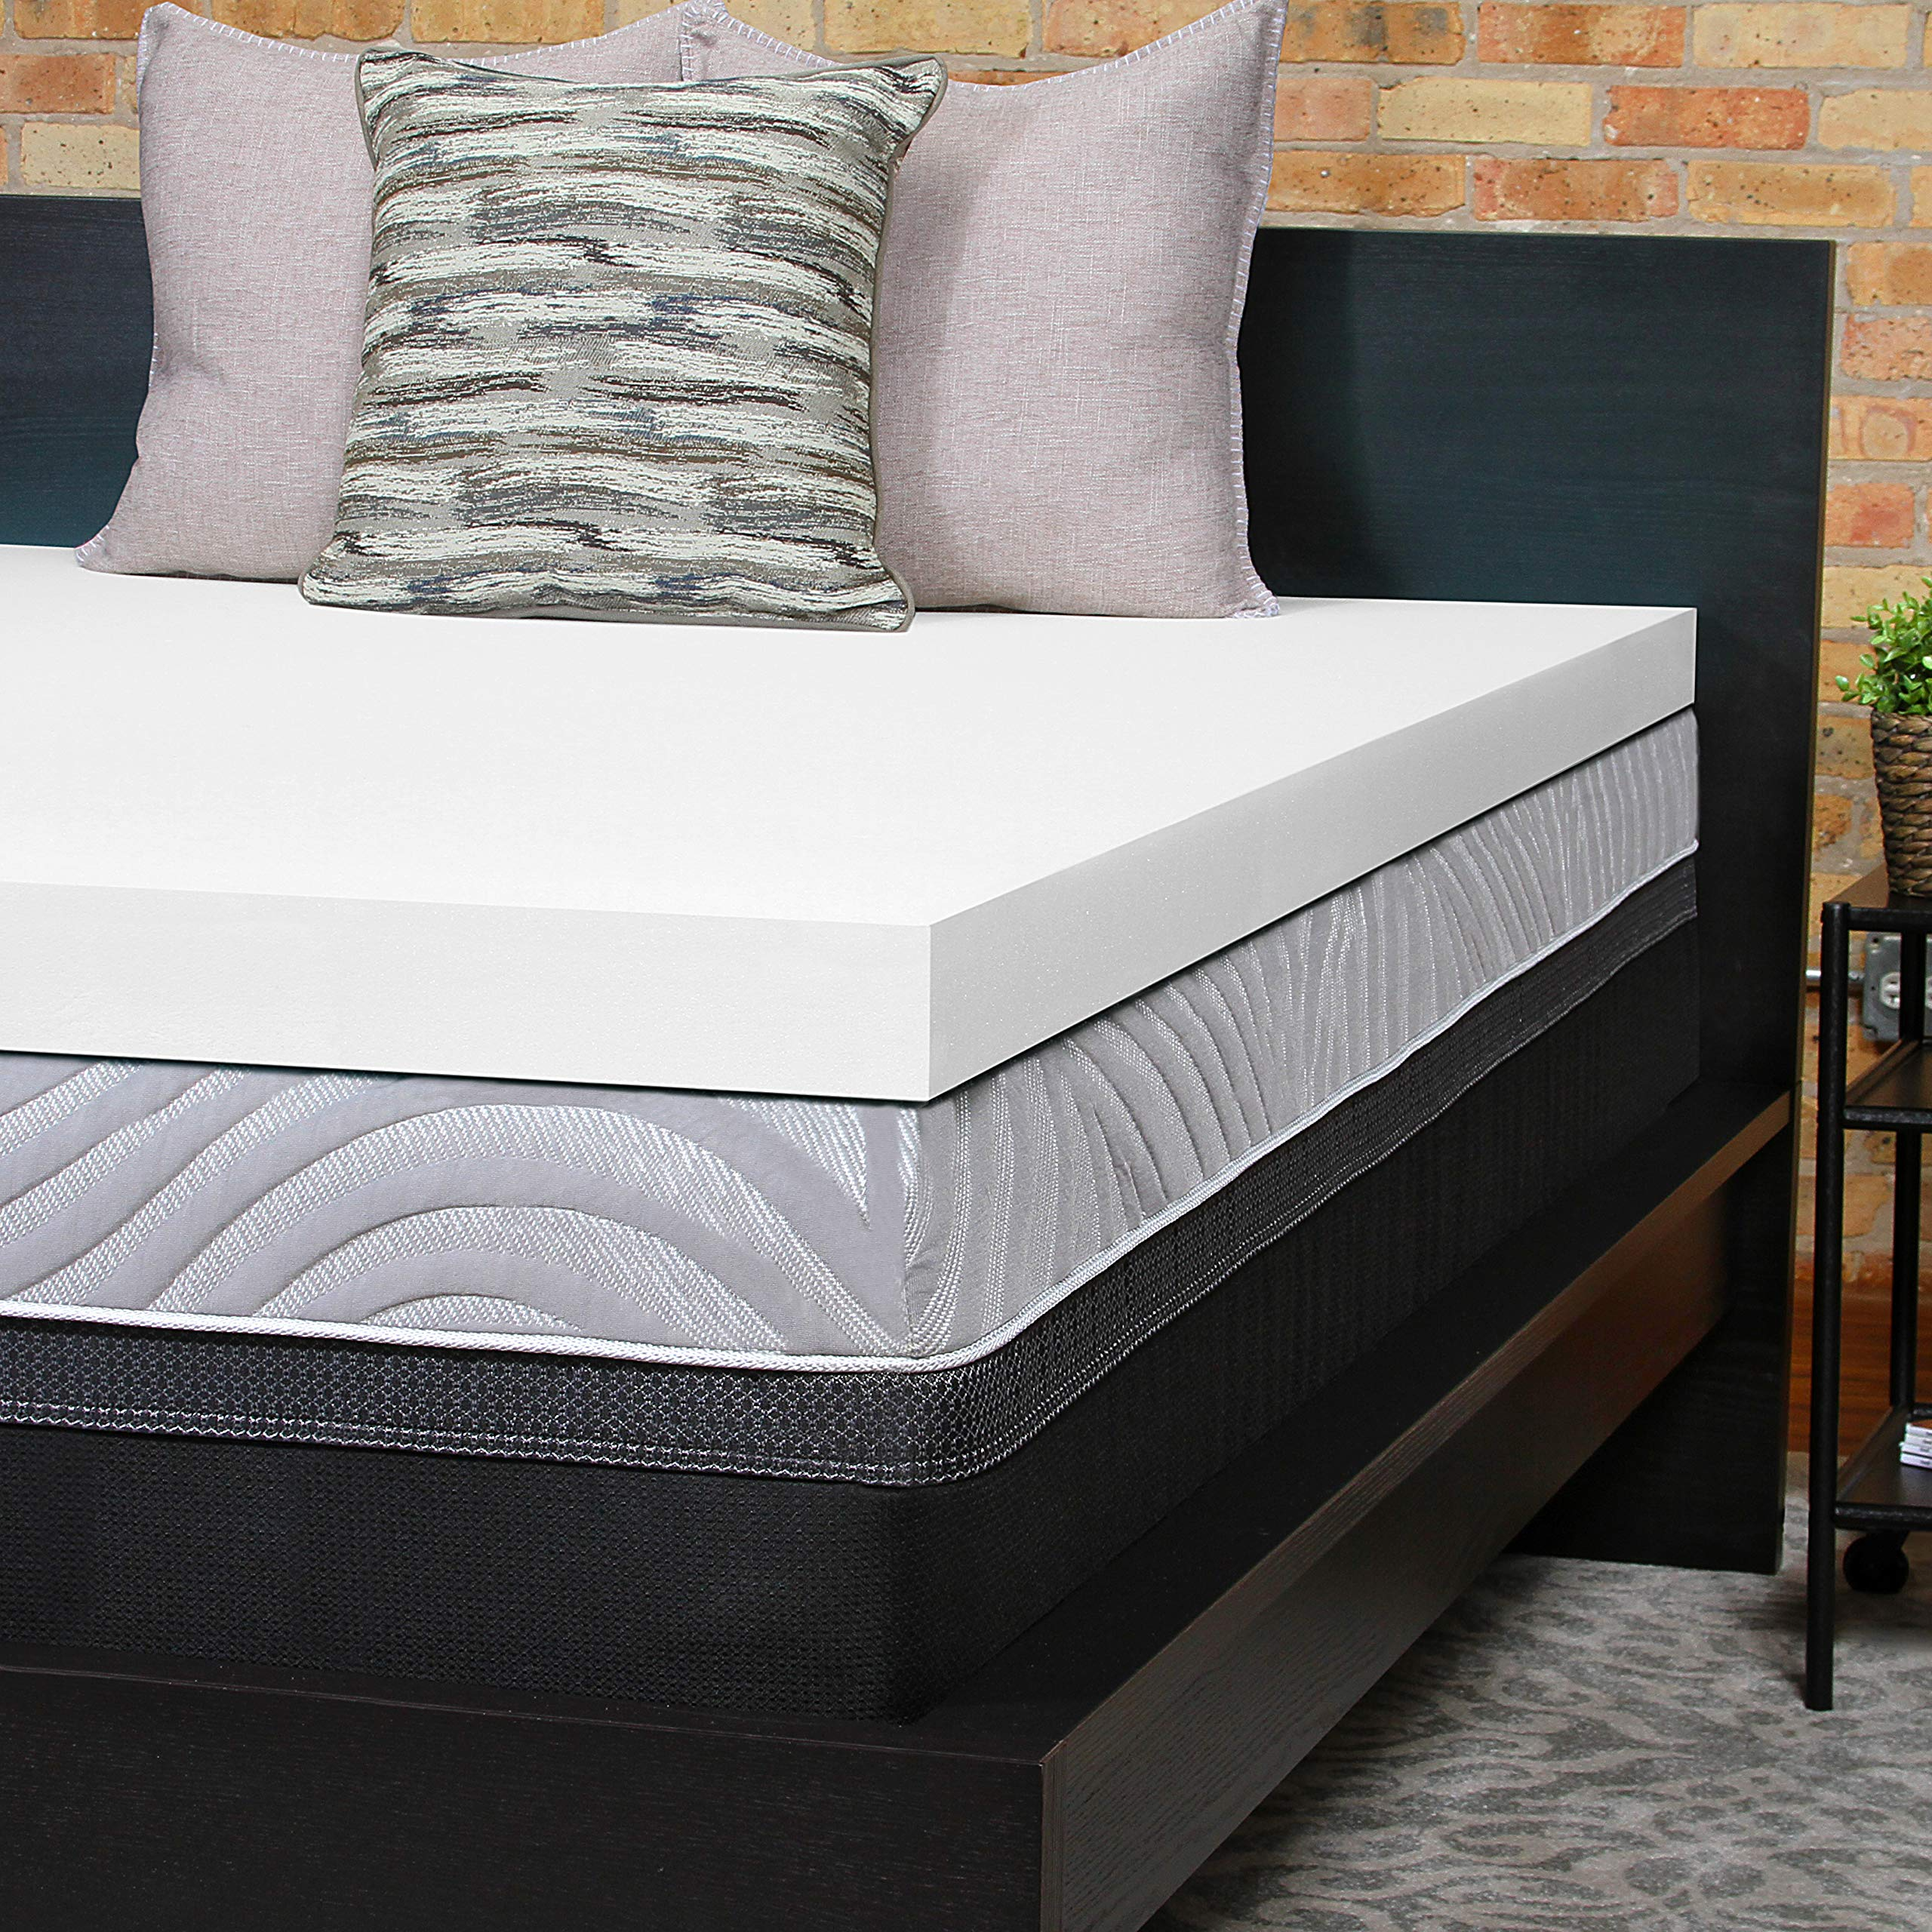 Sealy Essentials 3-Inch Firm Support Foam Mattress Topper Washable Cover, 5 YR Warranty, King